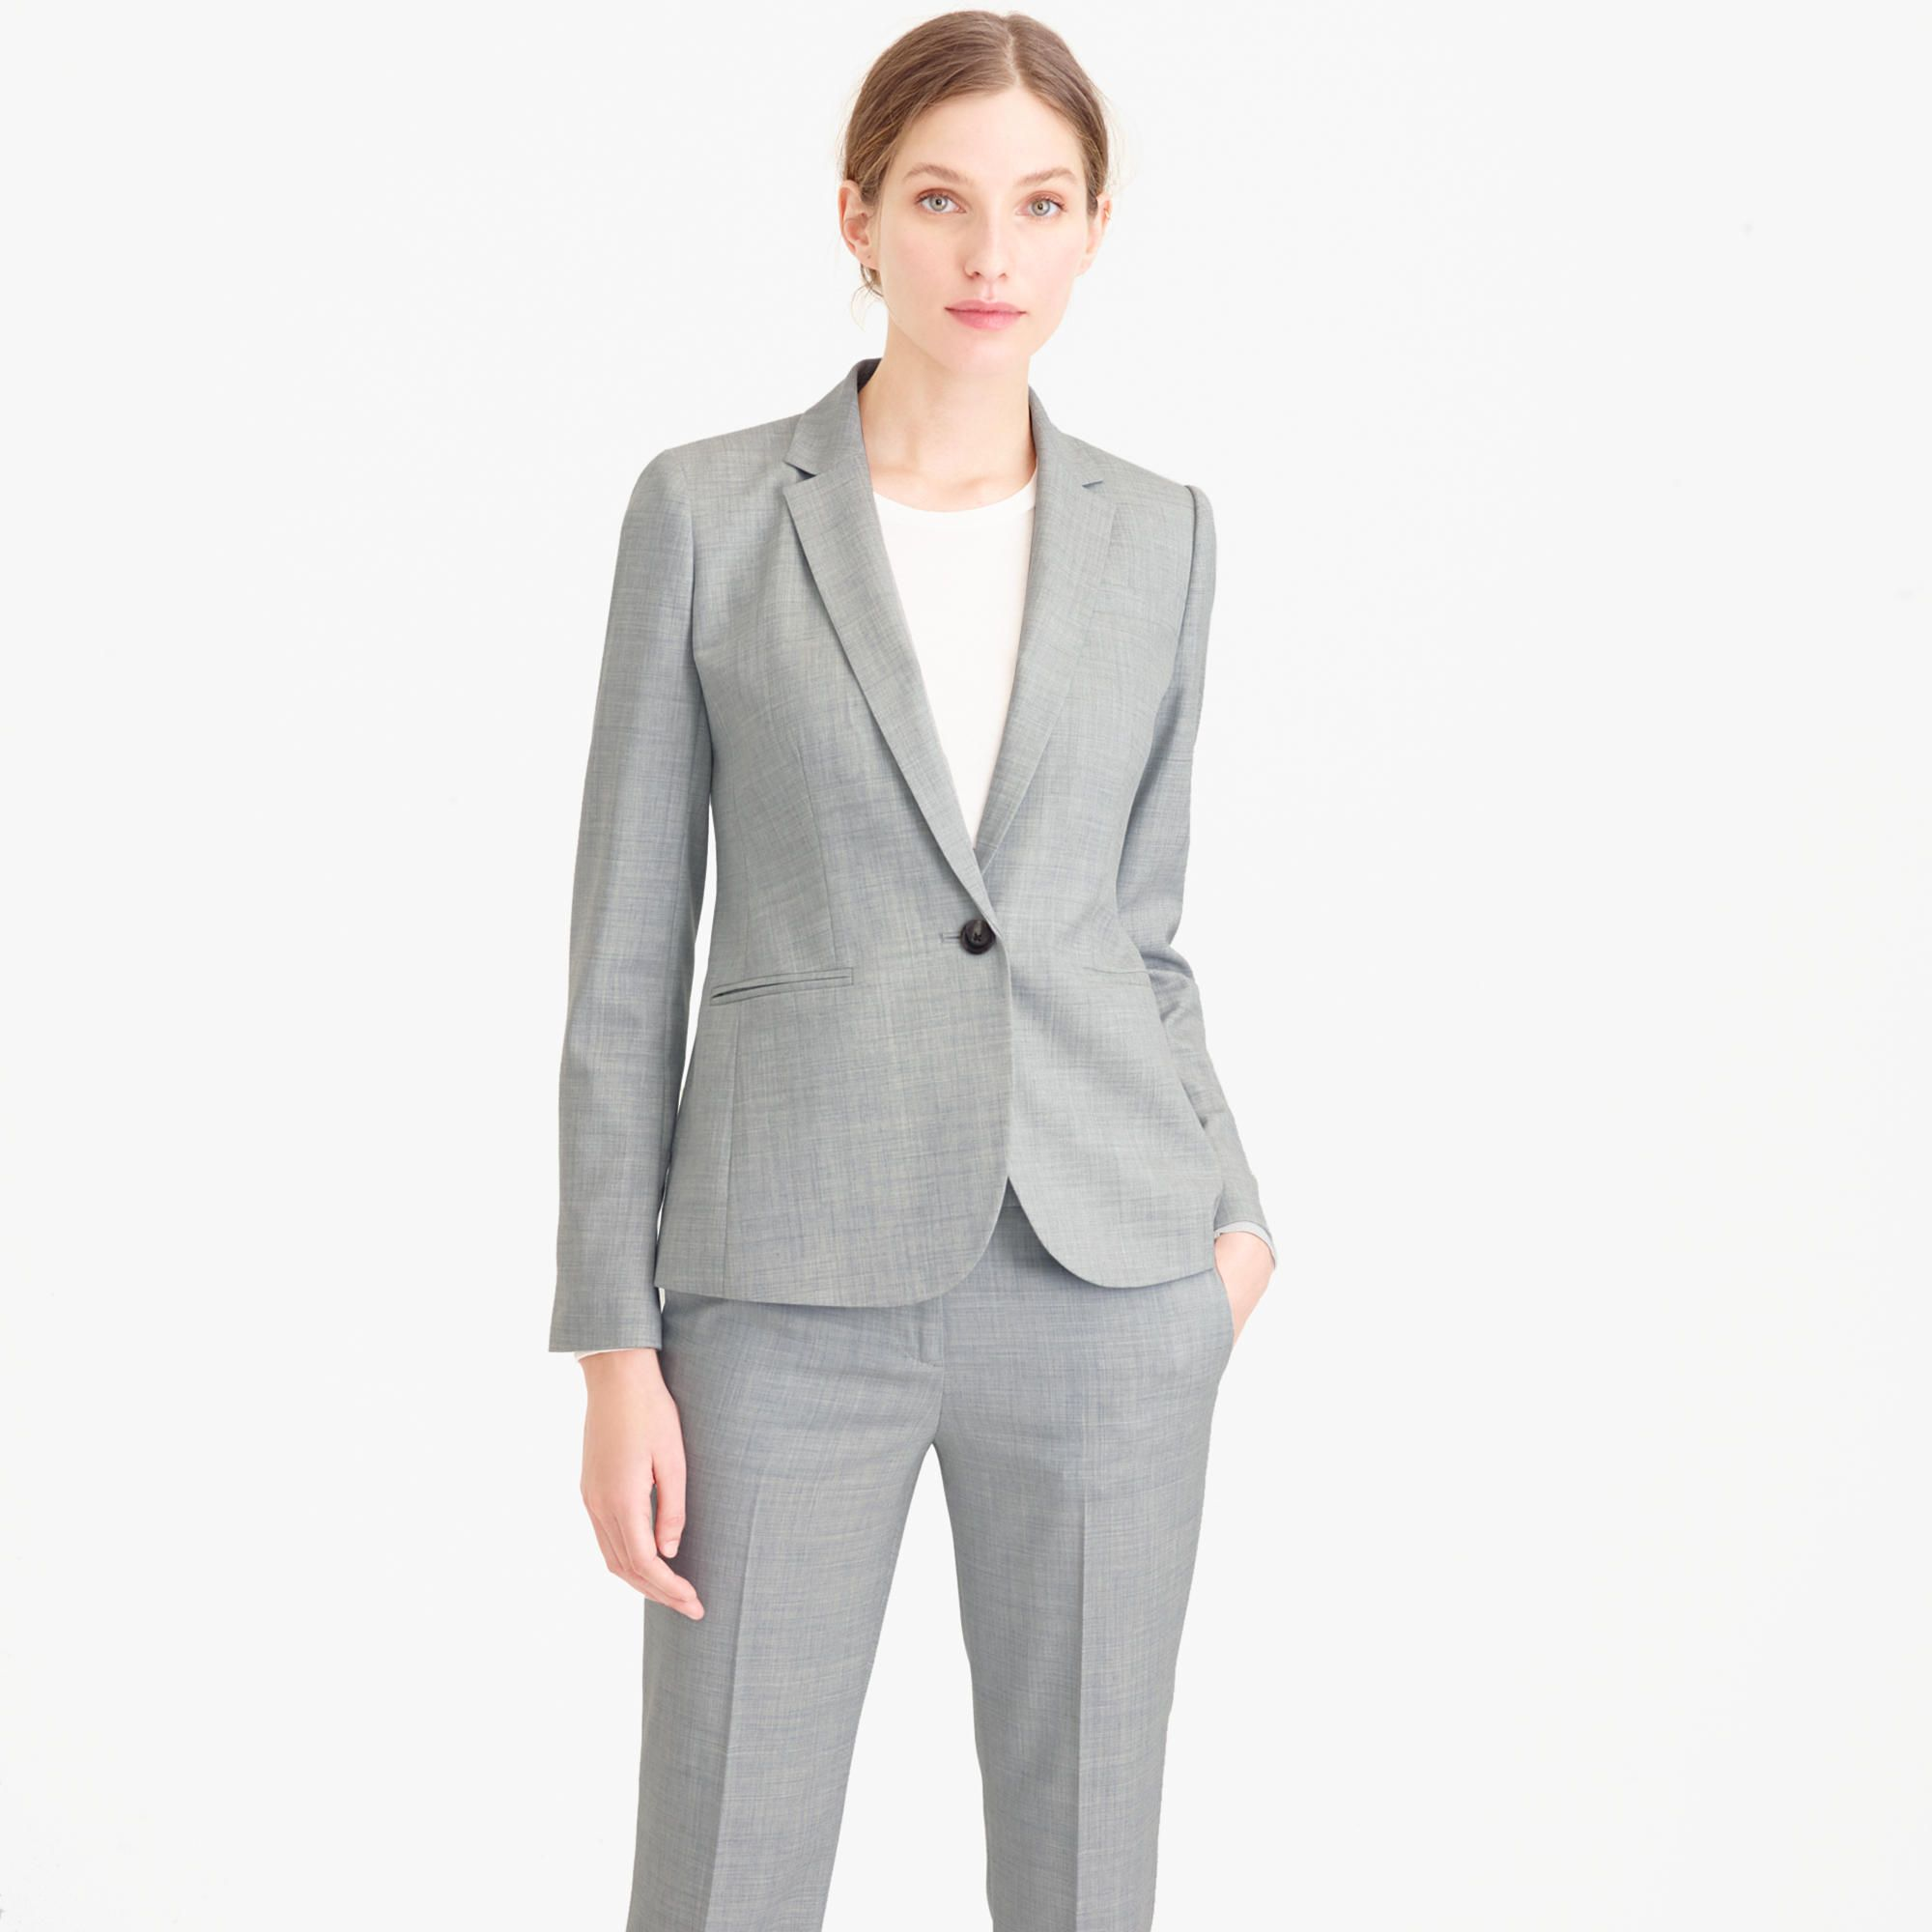 J Crew Light Gray Suit Things To Wear Pinterest Suits Suits